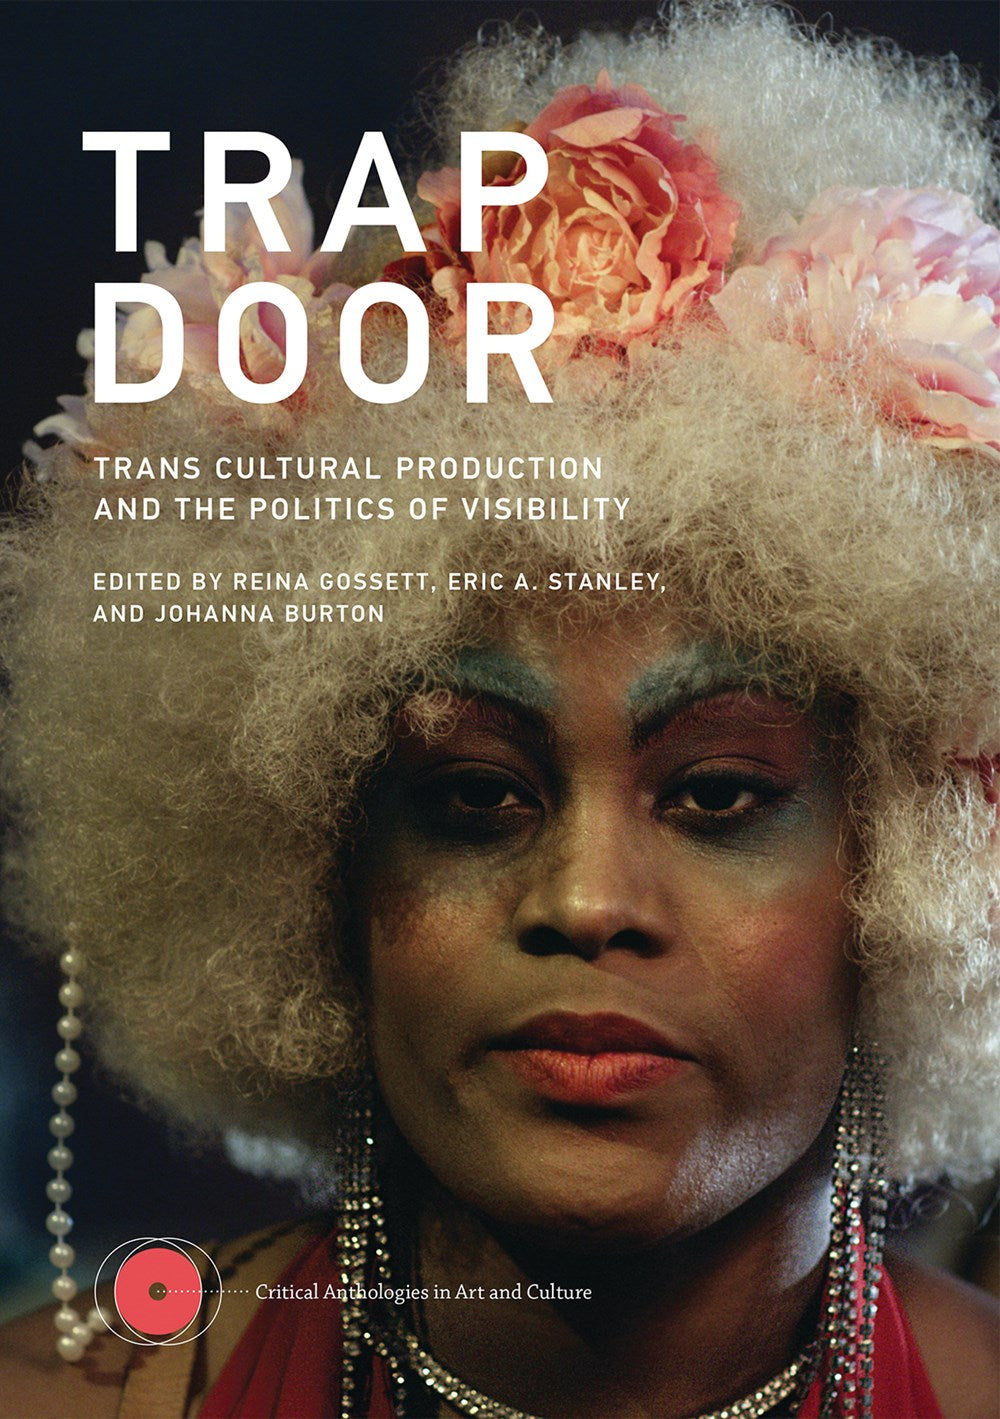 Trap Door: Trans Cultural Production and the Politics of Visibility - Book at Kavi Gupta Editions